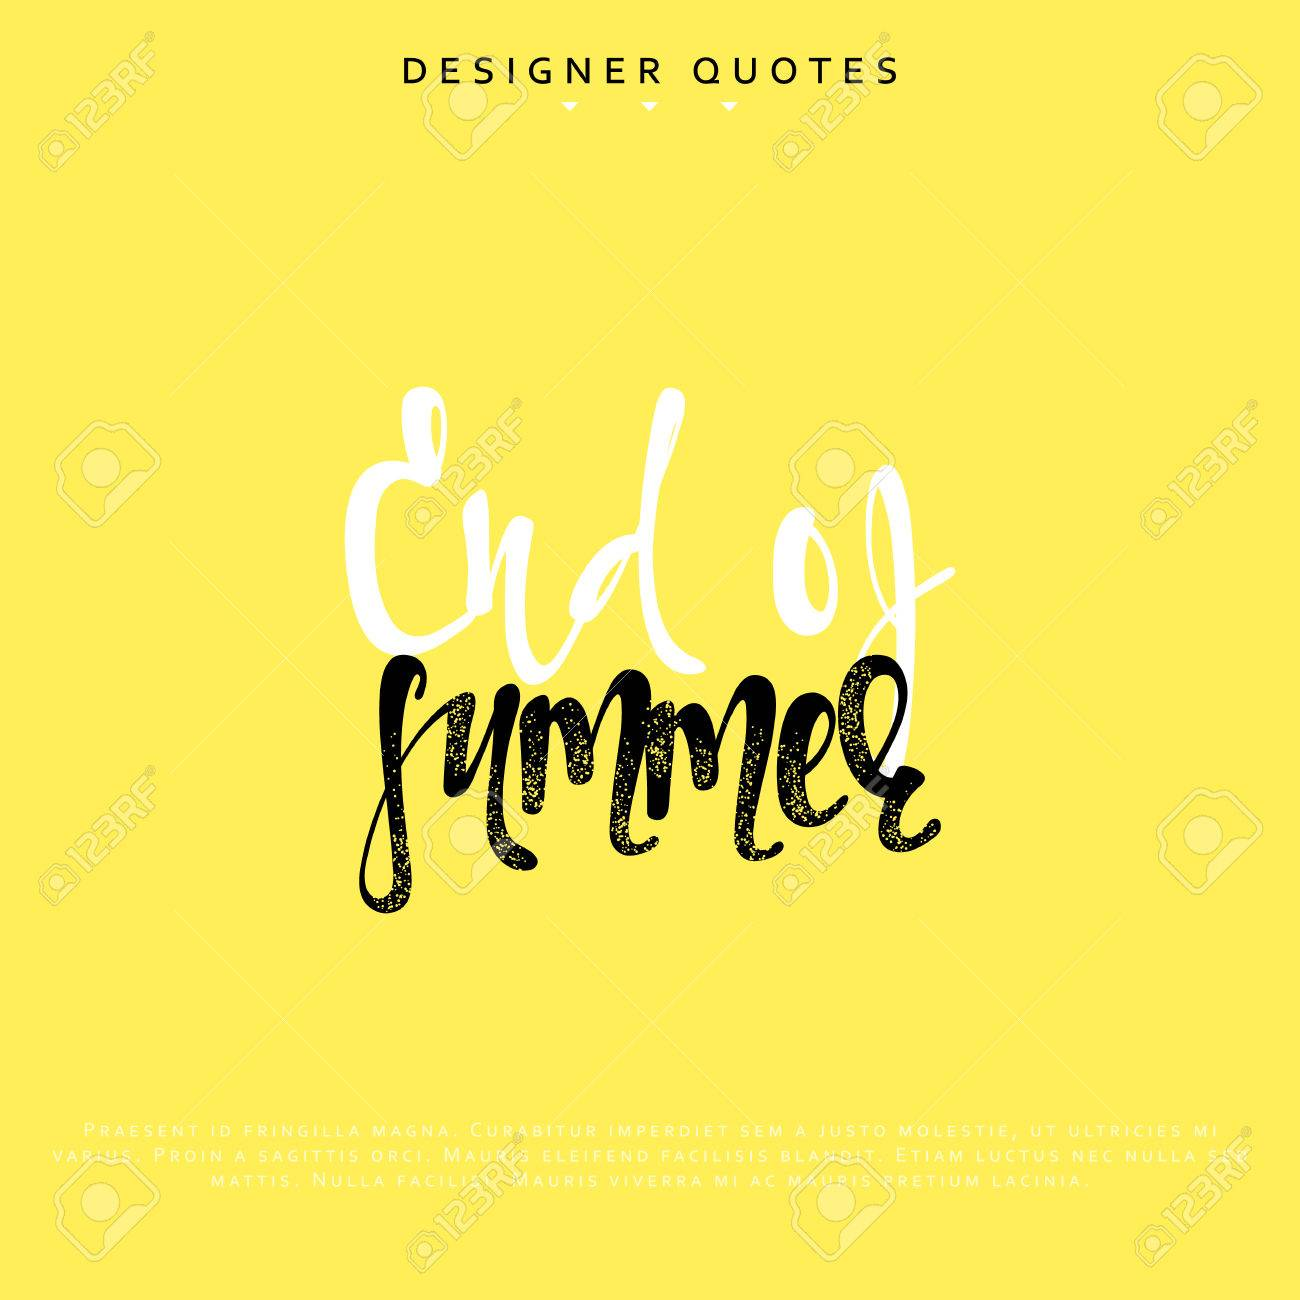 End Of Summer Inscription Hand Drawn Calligraphy Lettering Motivation Poster Modern Brush Calligraphy Isolated Phrase Vector Illustration